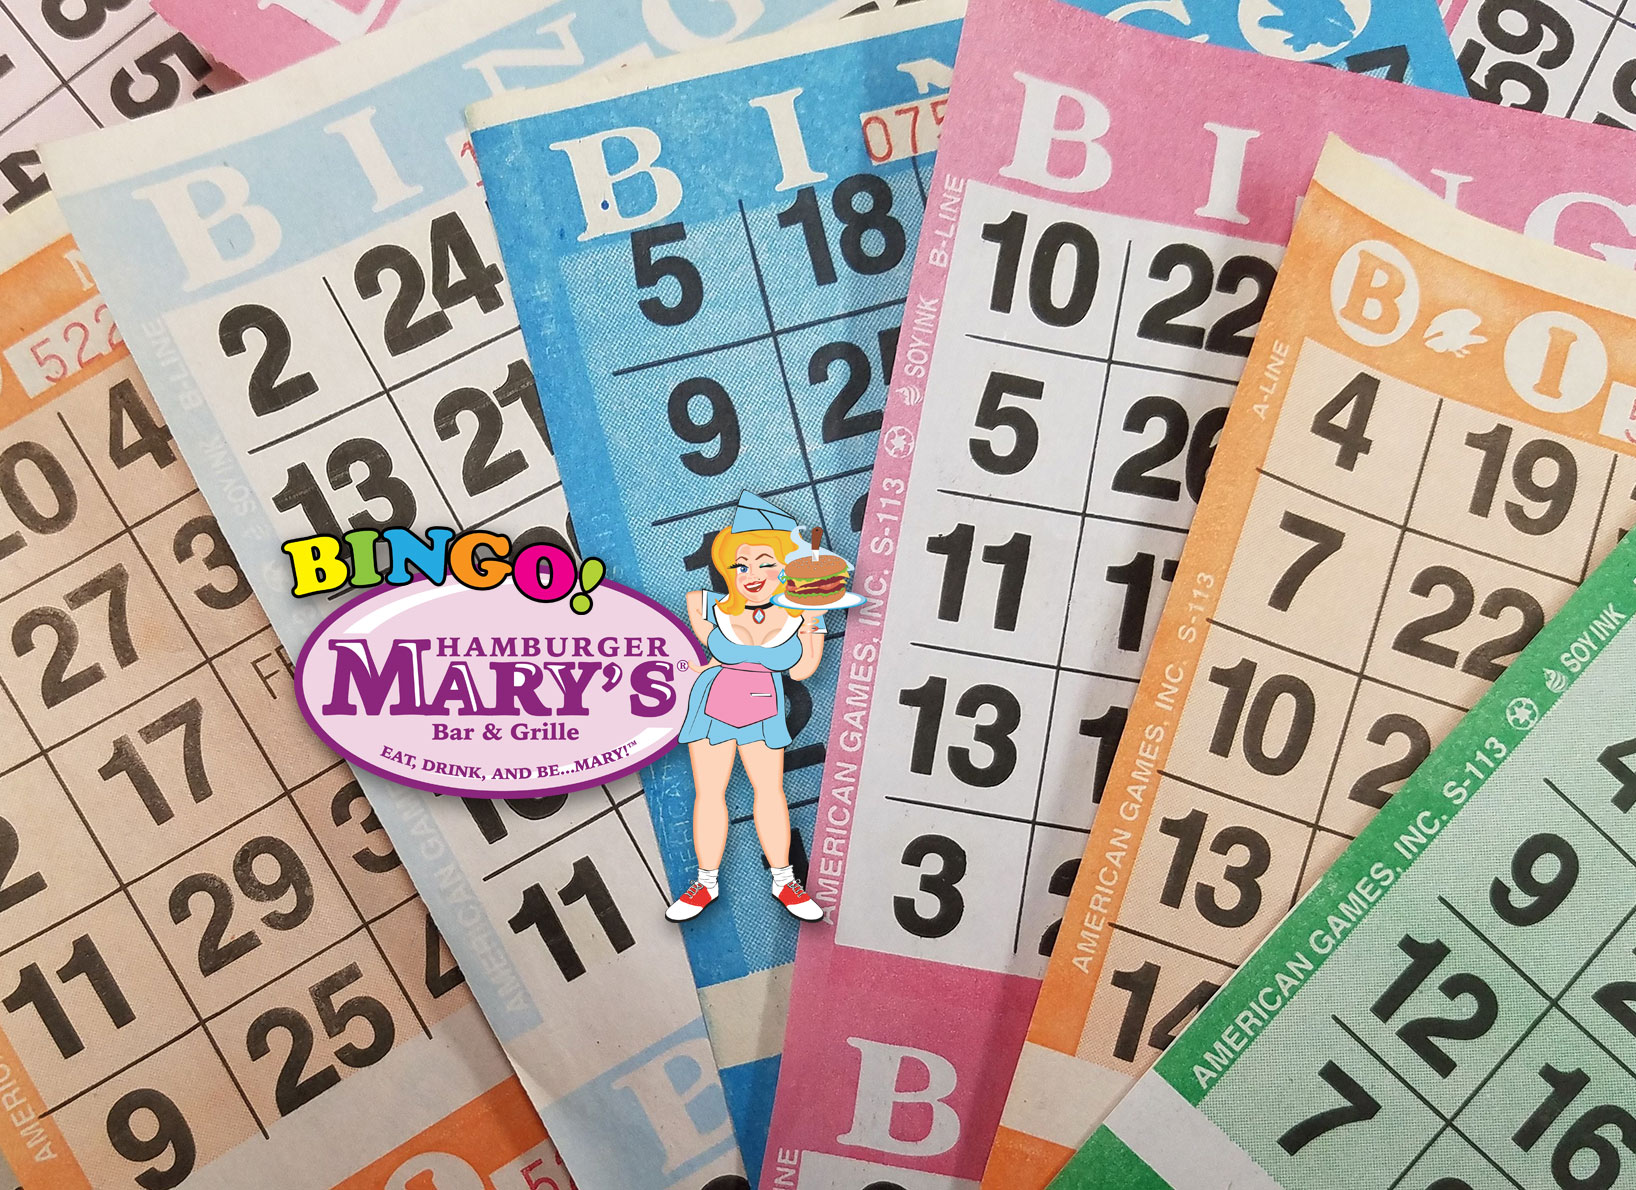 Hamburger Mary's Charity Bingo Night - February 28, 7-9pm